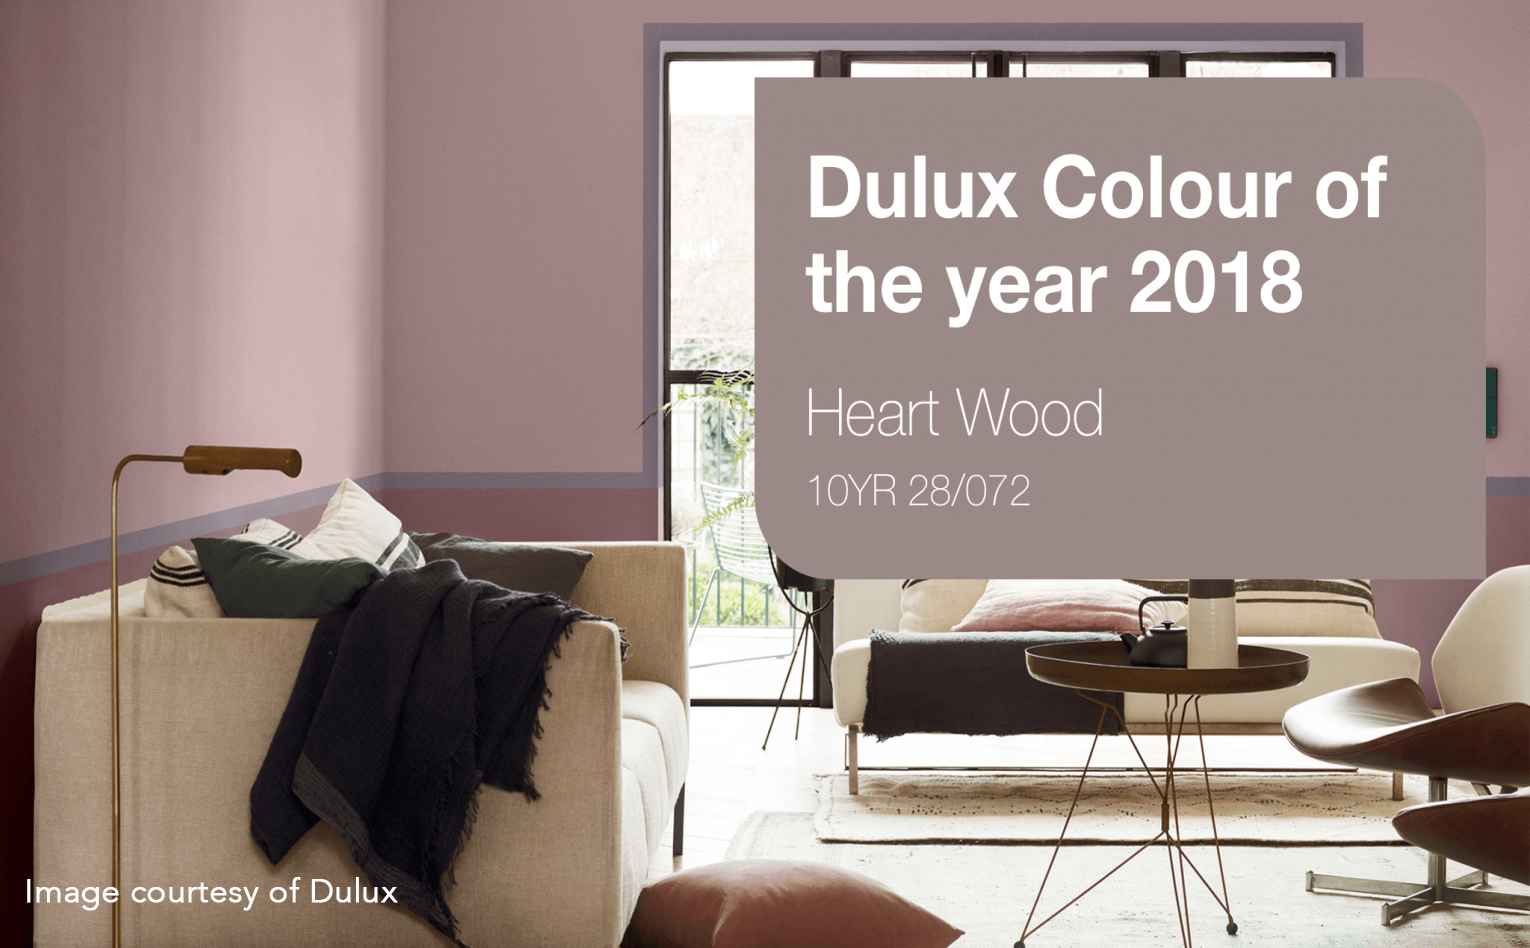 dulux-colour-of-the-year-2018-keyvisual-inspiration-uk-1 copy